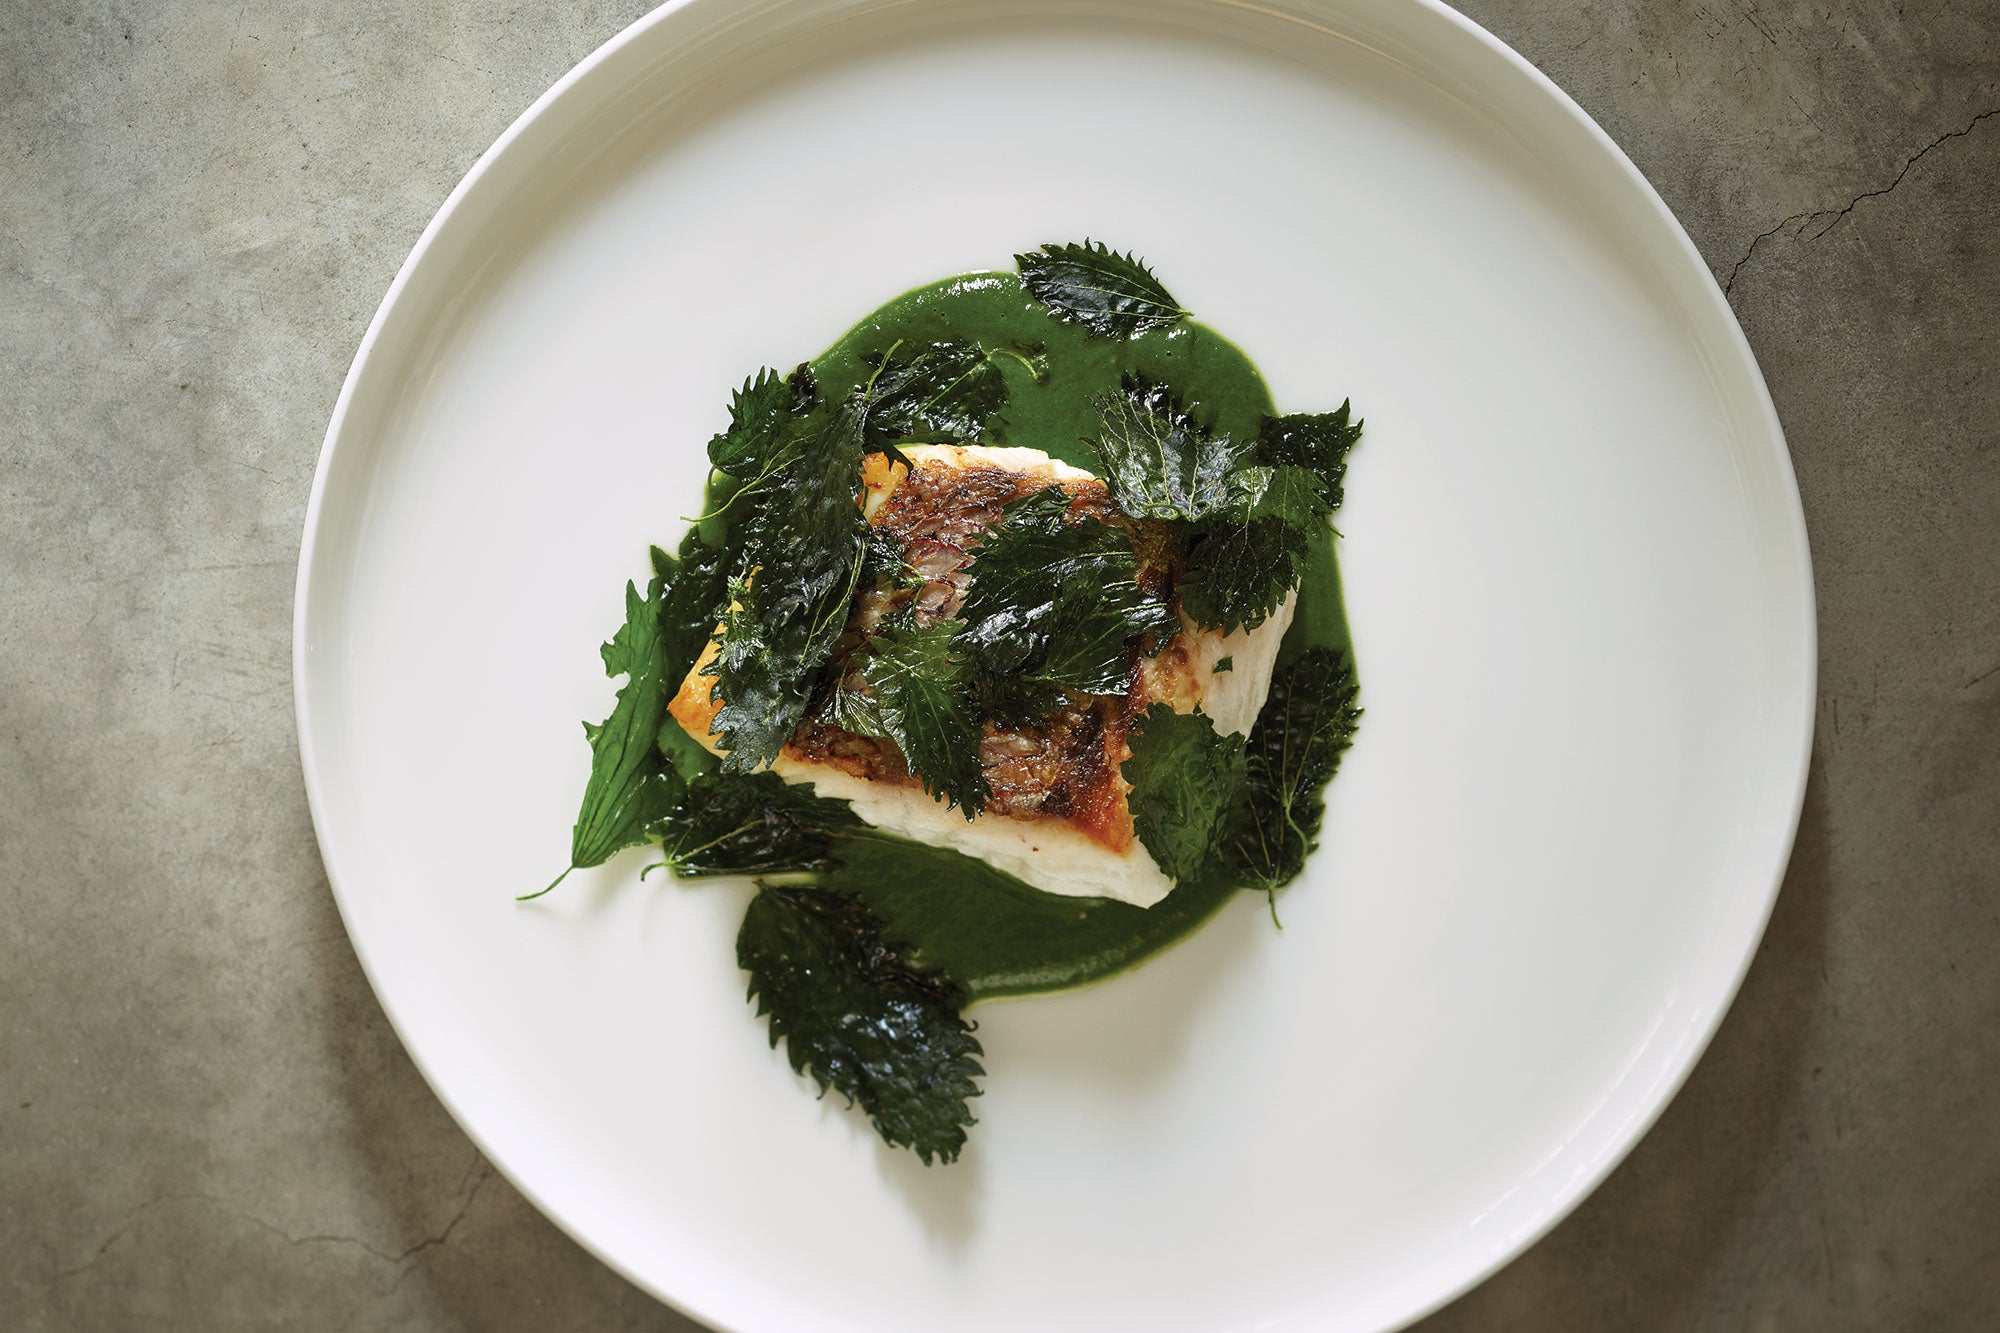 Seared Snapper with Nettle Sauce, Tasmania